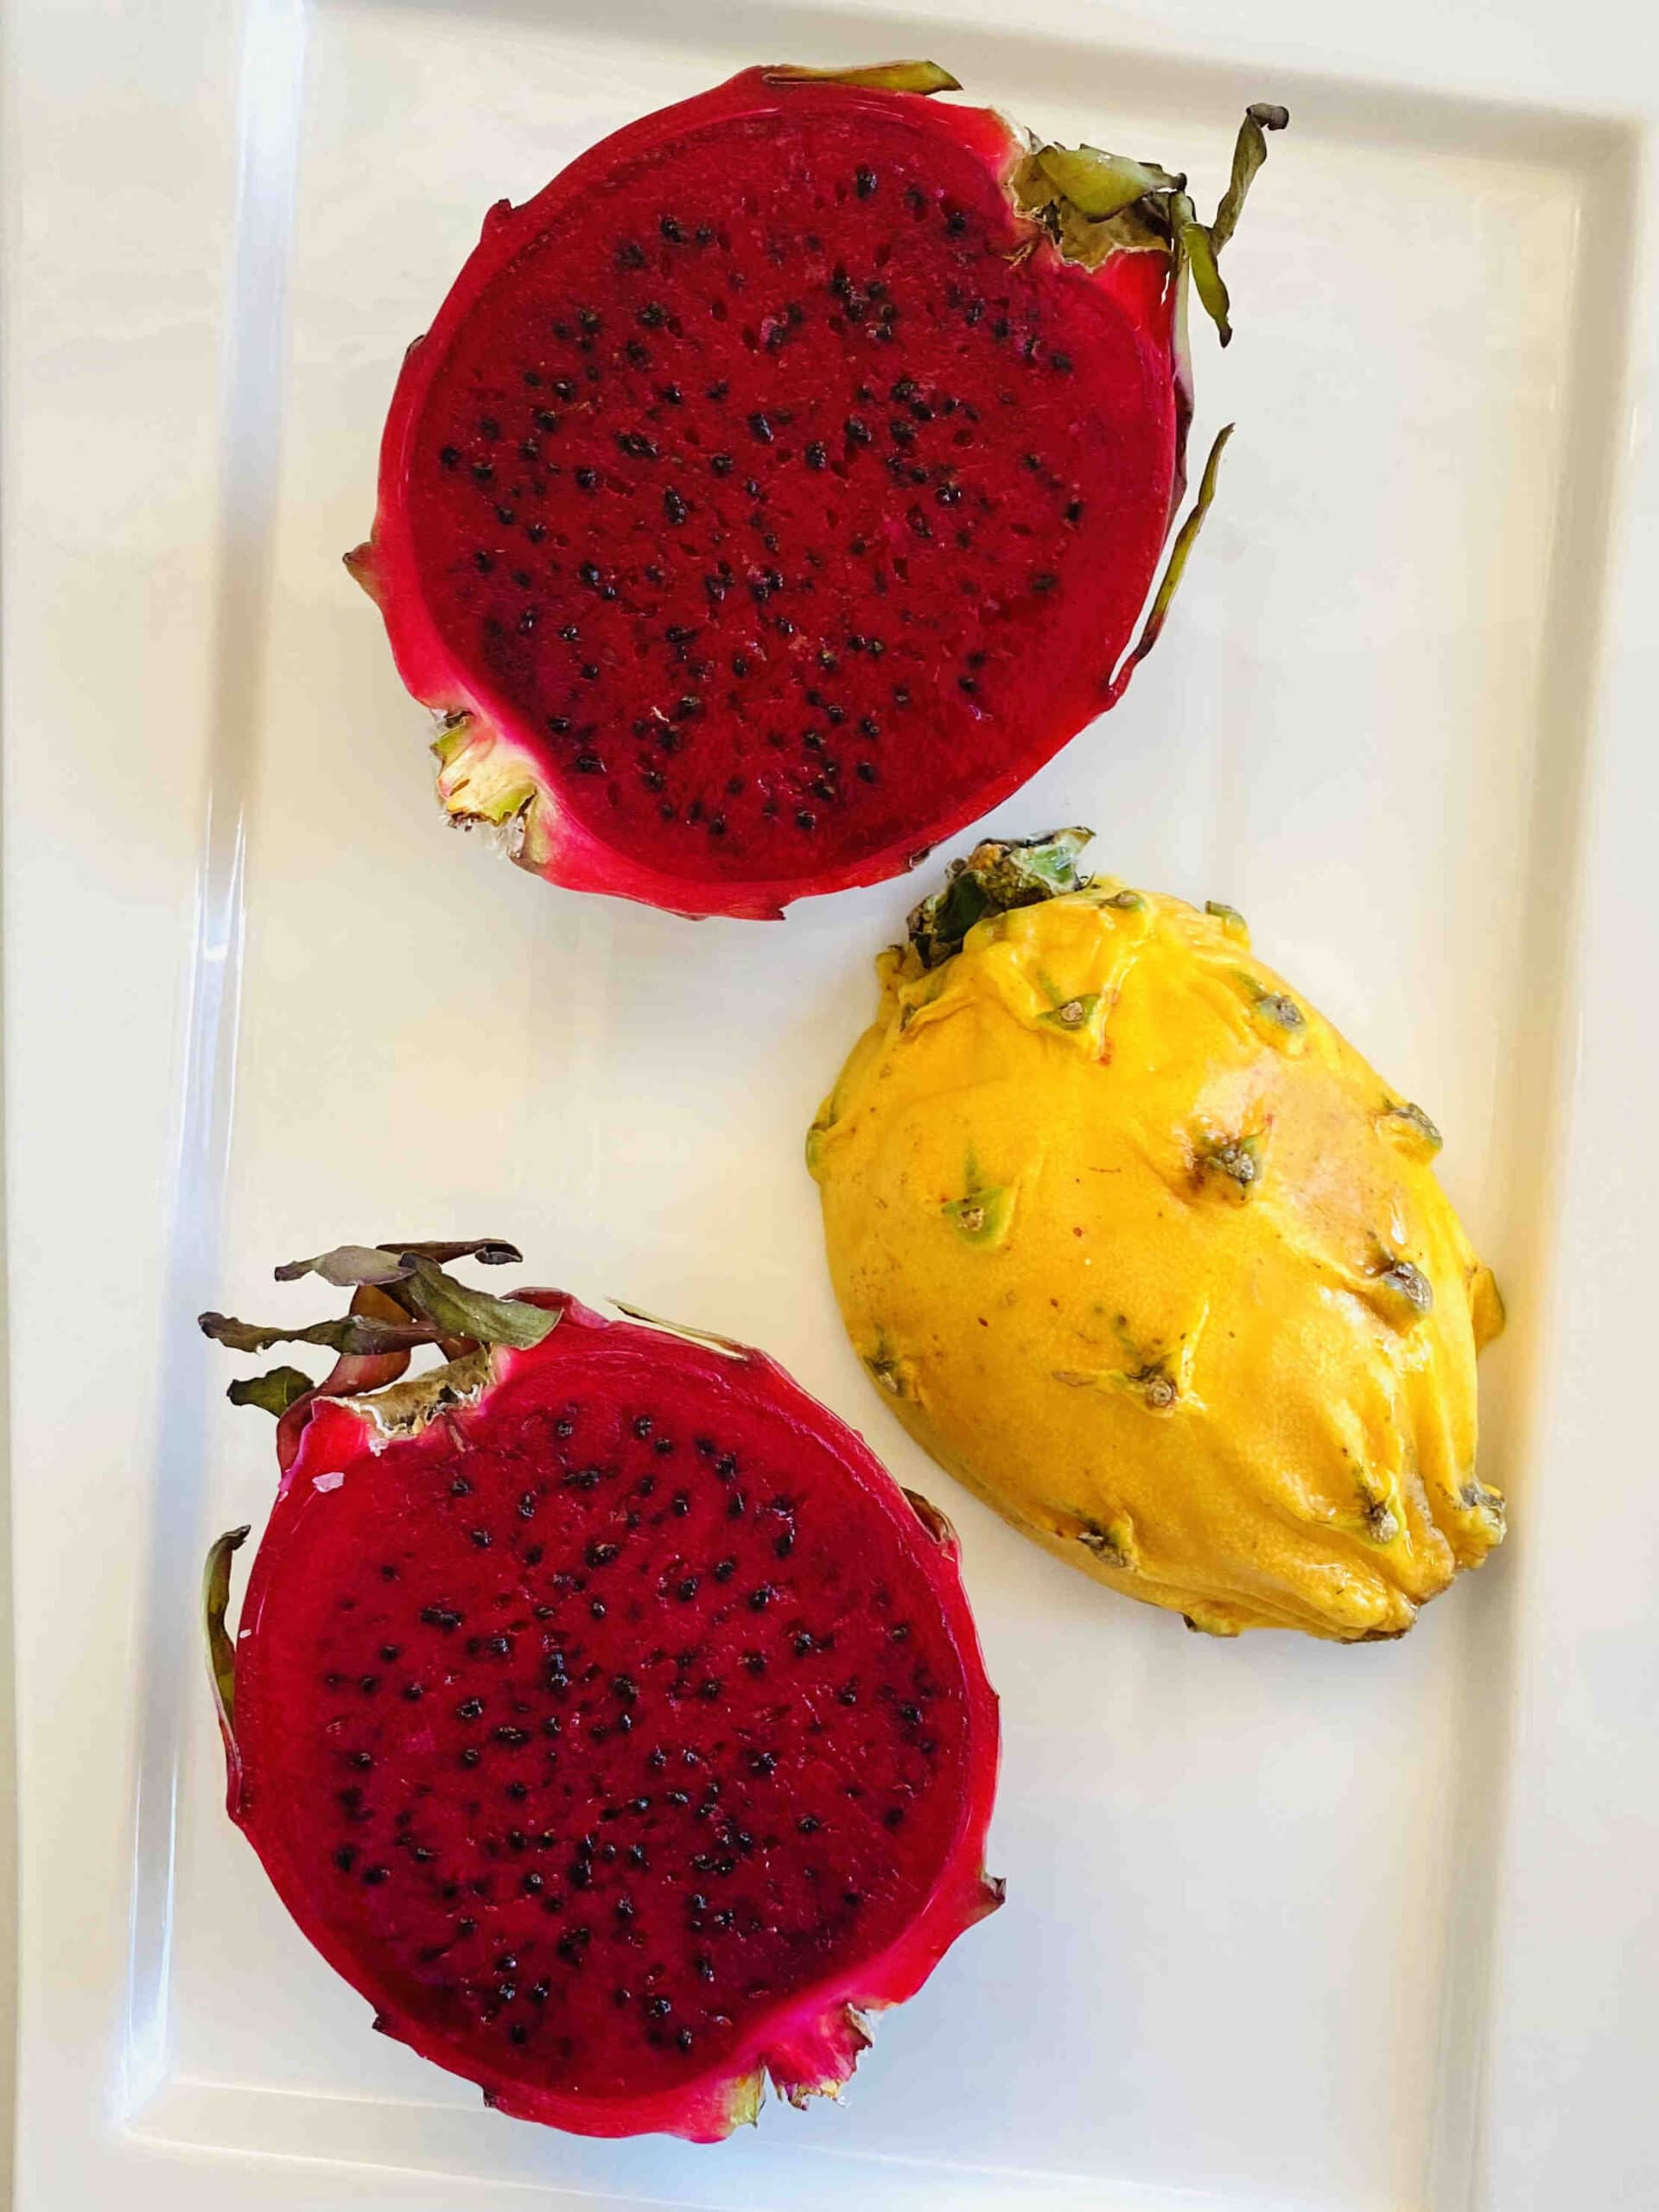 red dragon fruit and yellow dragon fruit sliced in half on a white rectangular plate